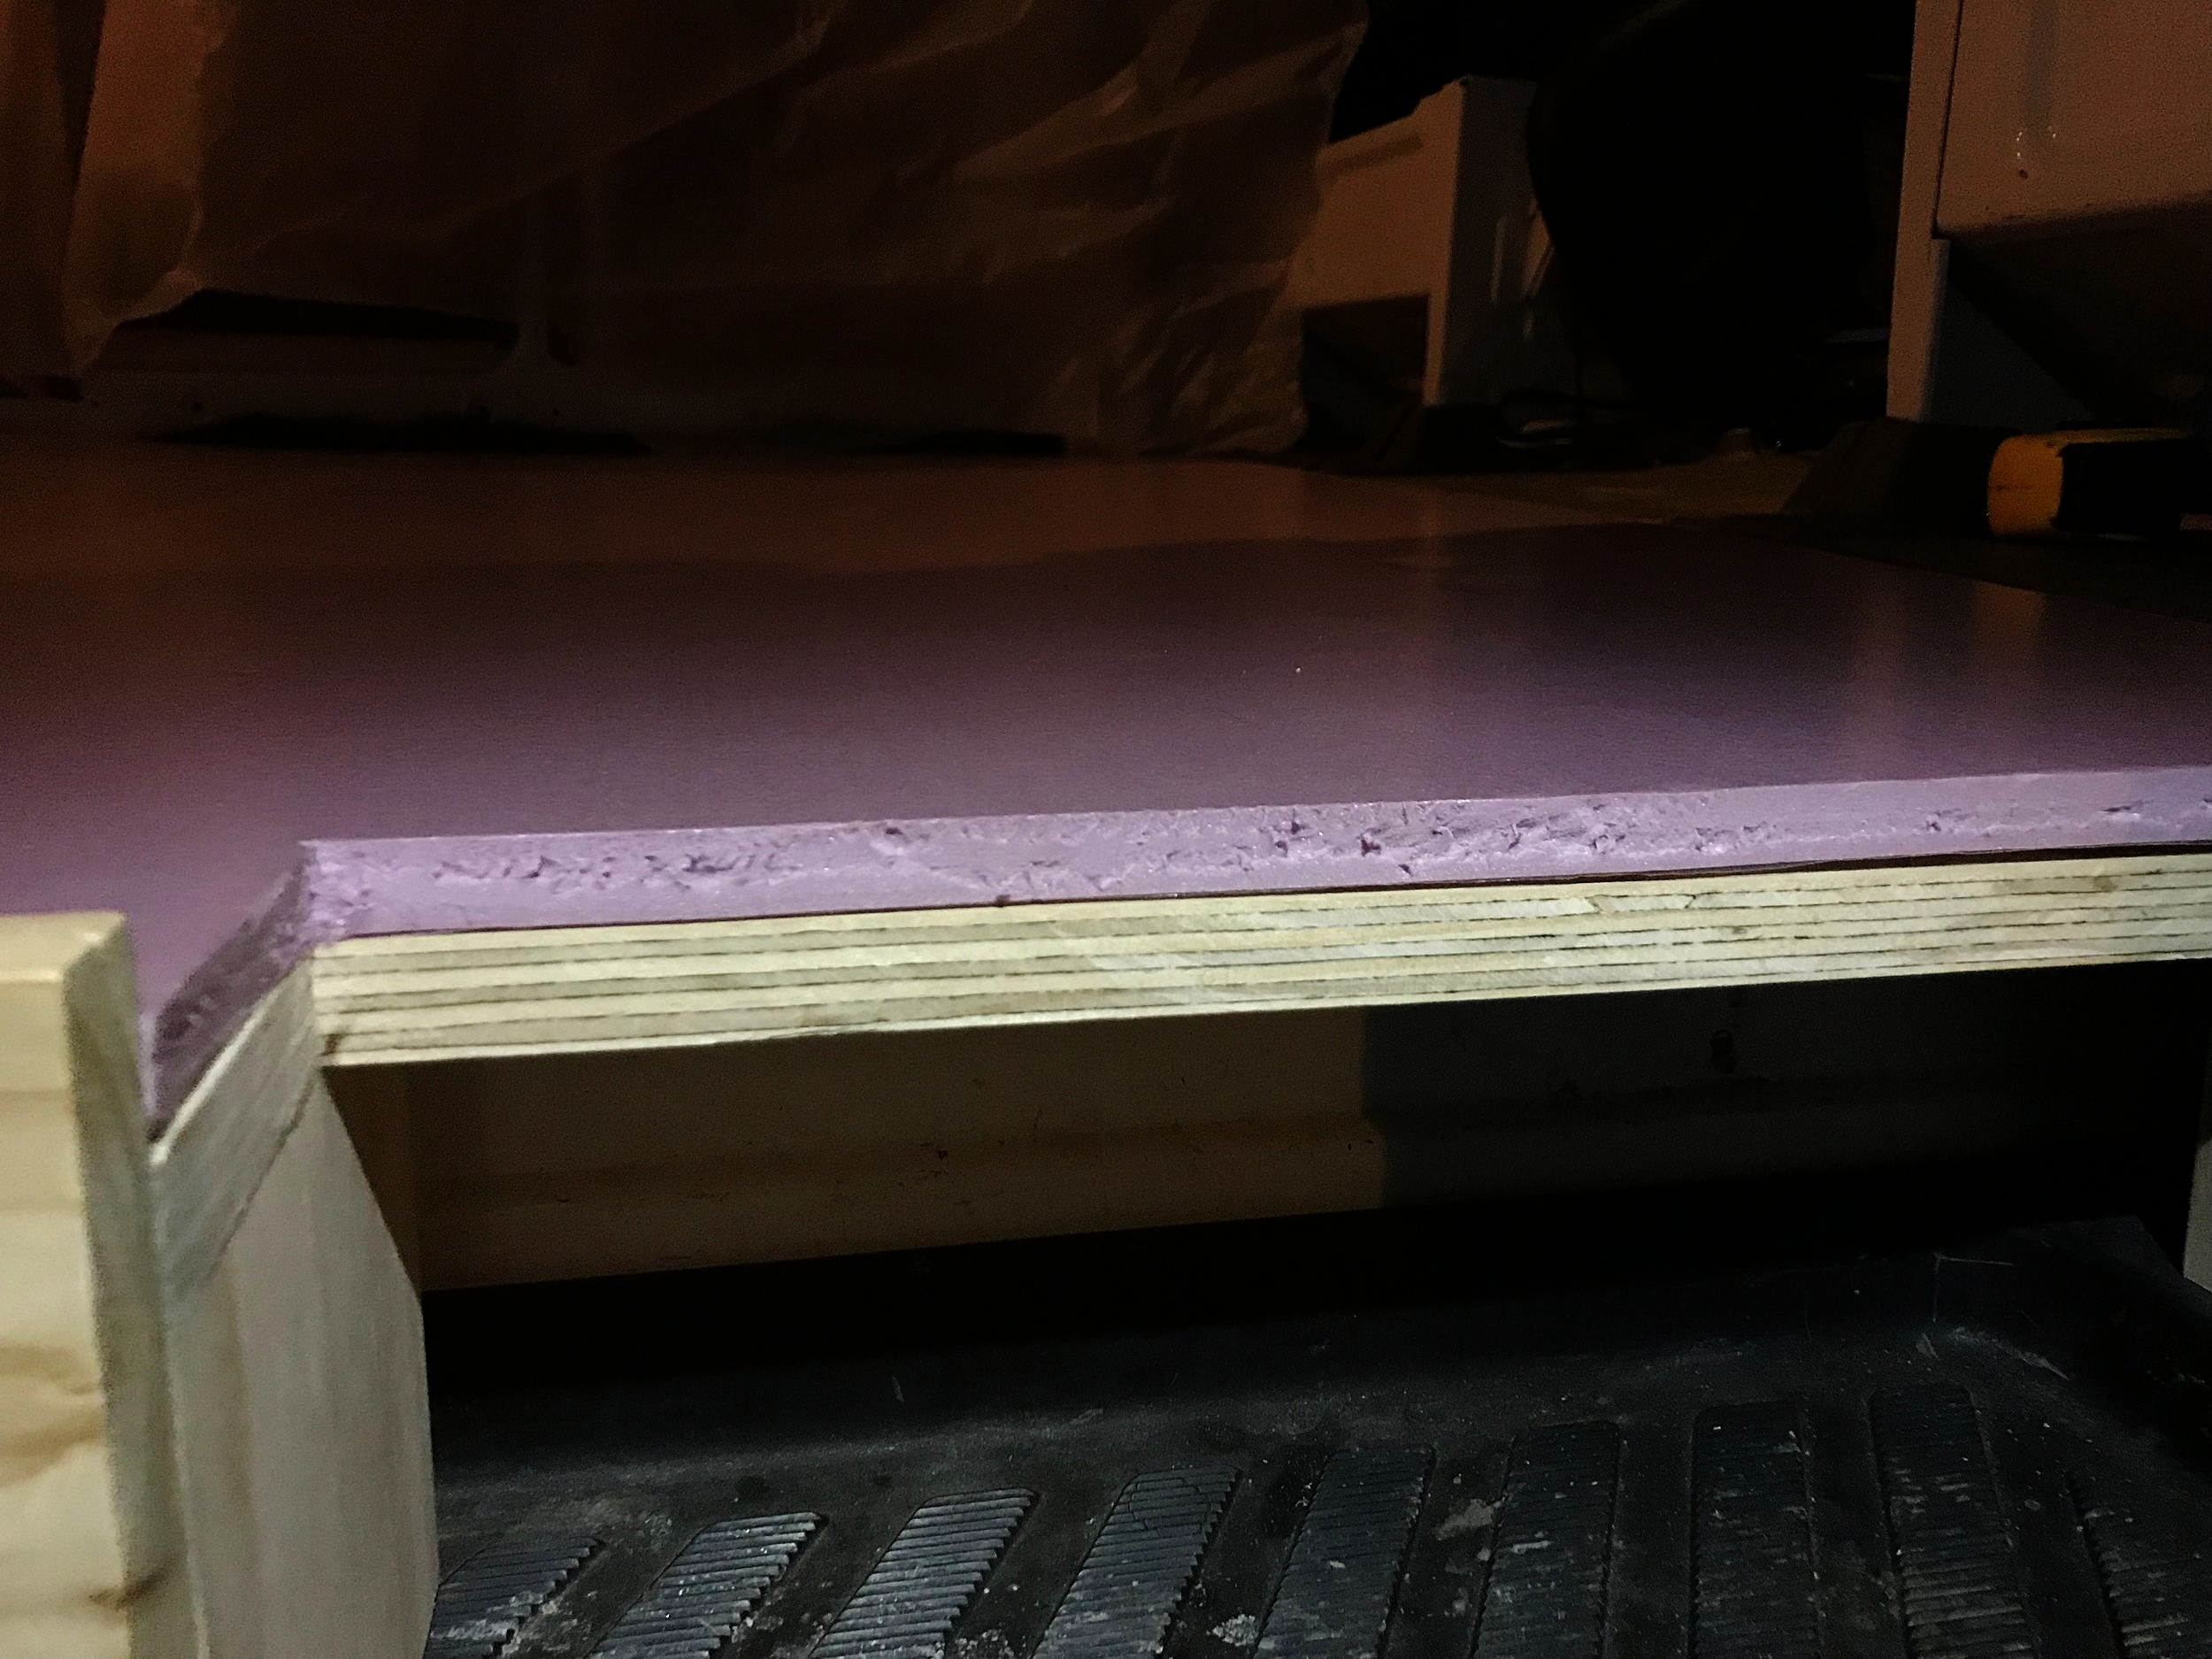 Adding a half inch of XPS will keep our feet warmer without losing too much headroom. Here is a view of the floor foam cut out for our step area.